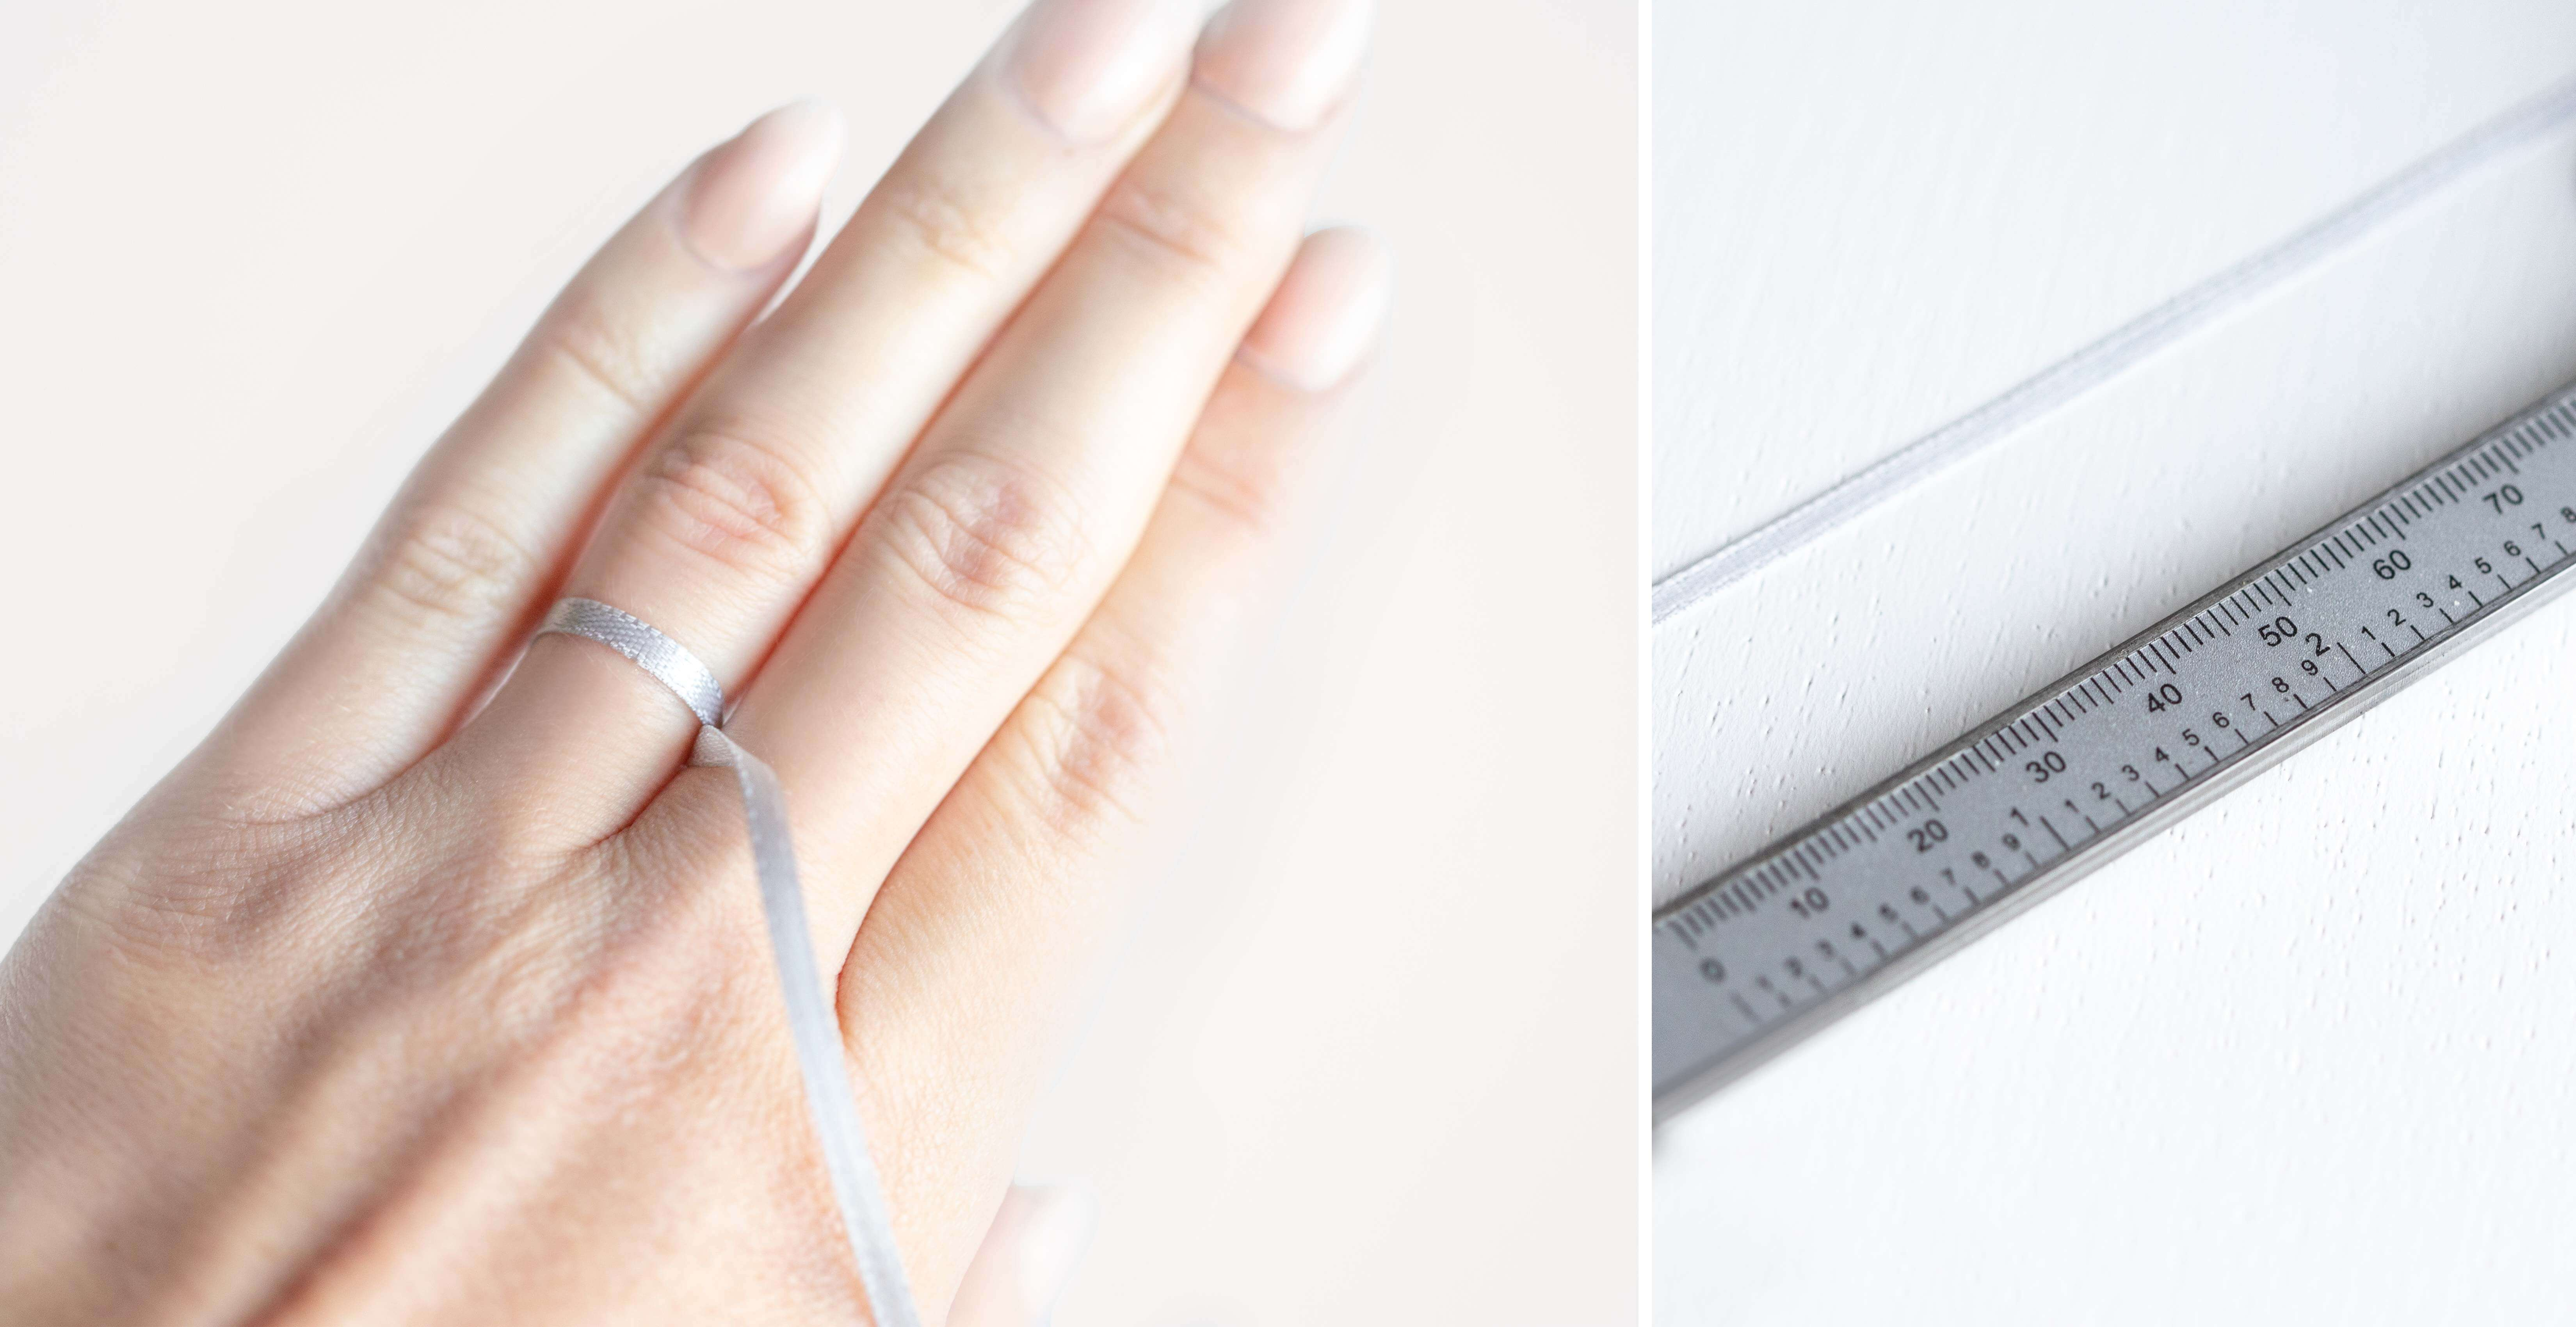 A piece of fabric wrapped around a finger to measure ring size.